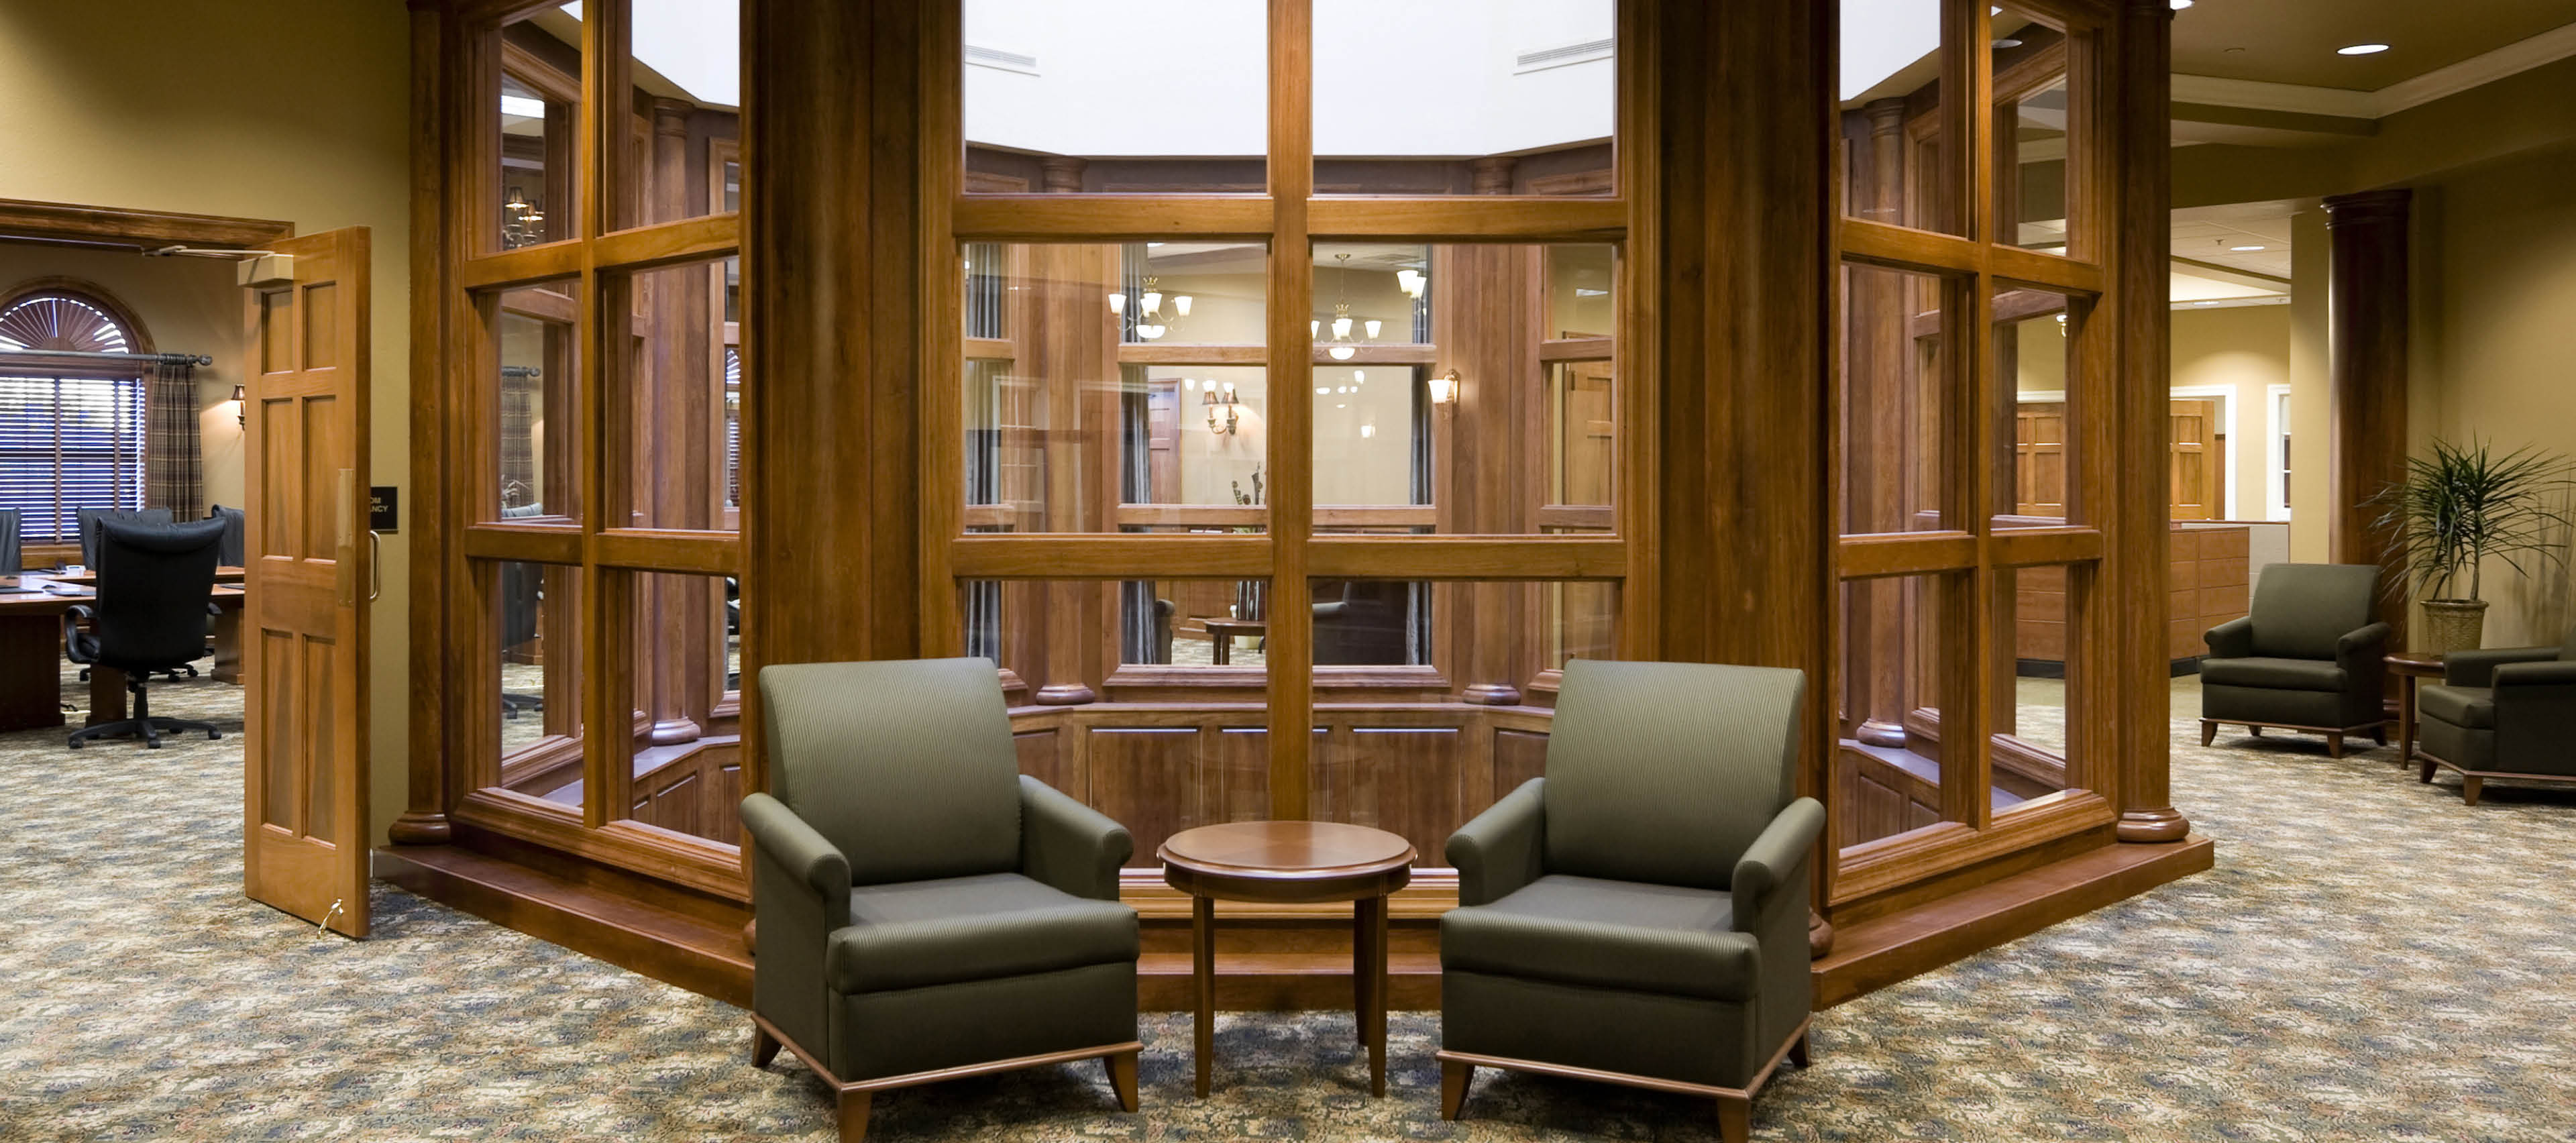 First Bank lobby